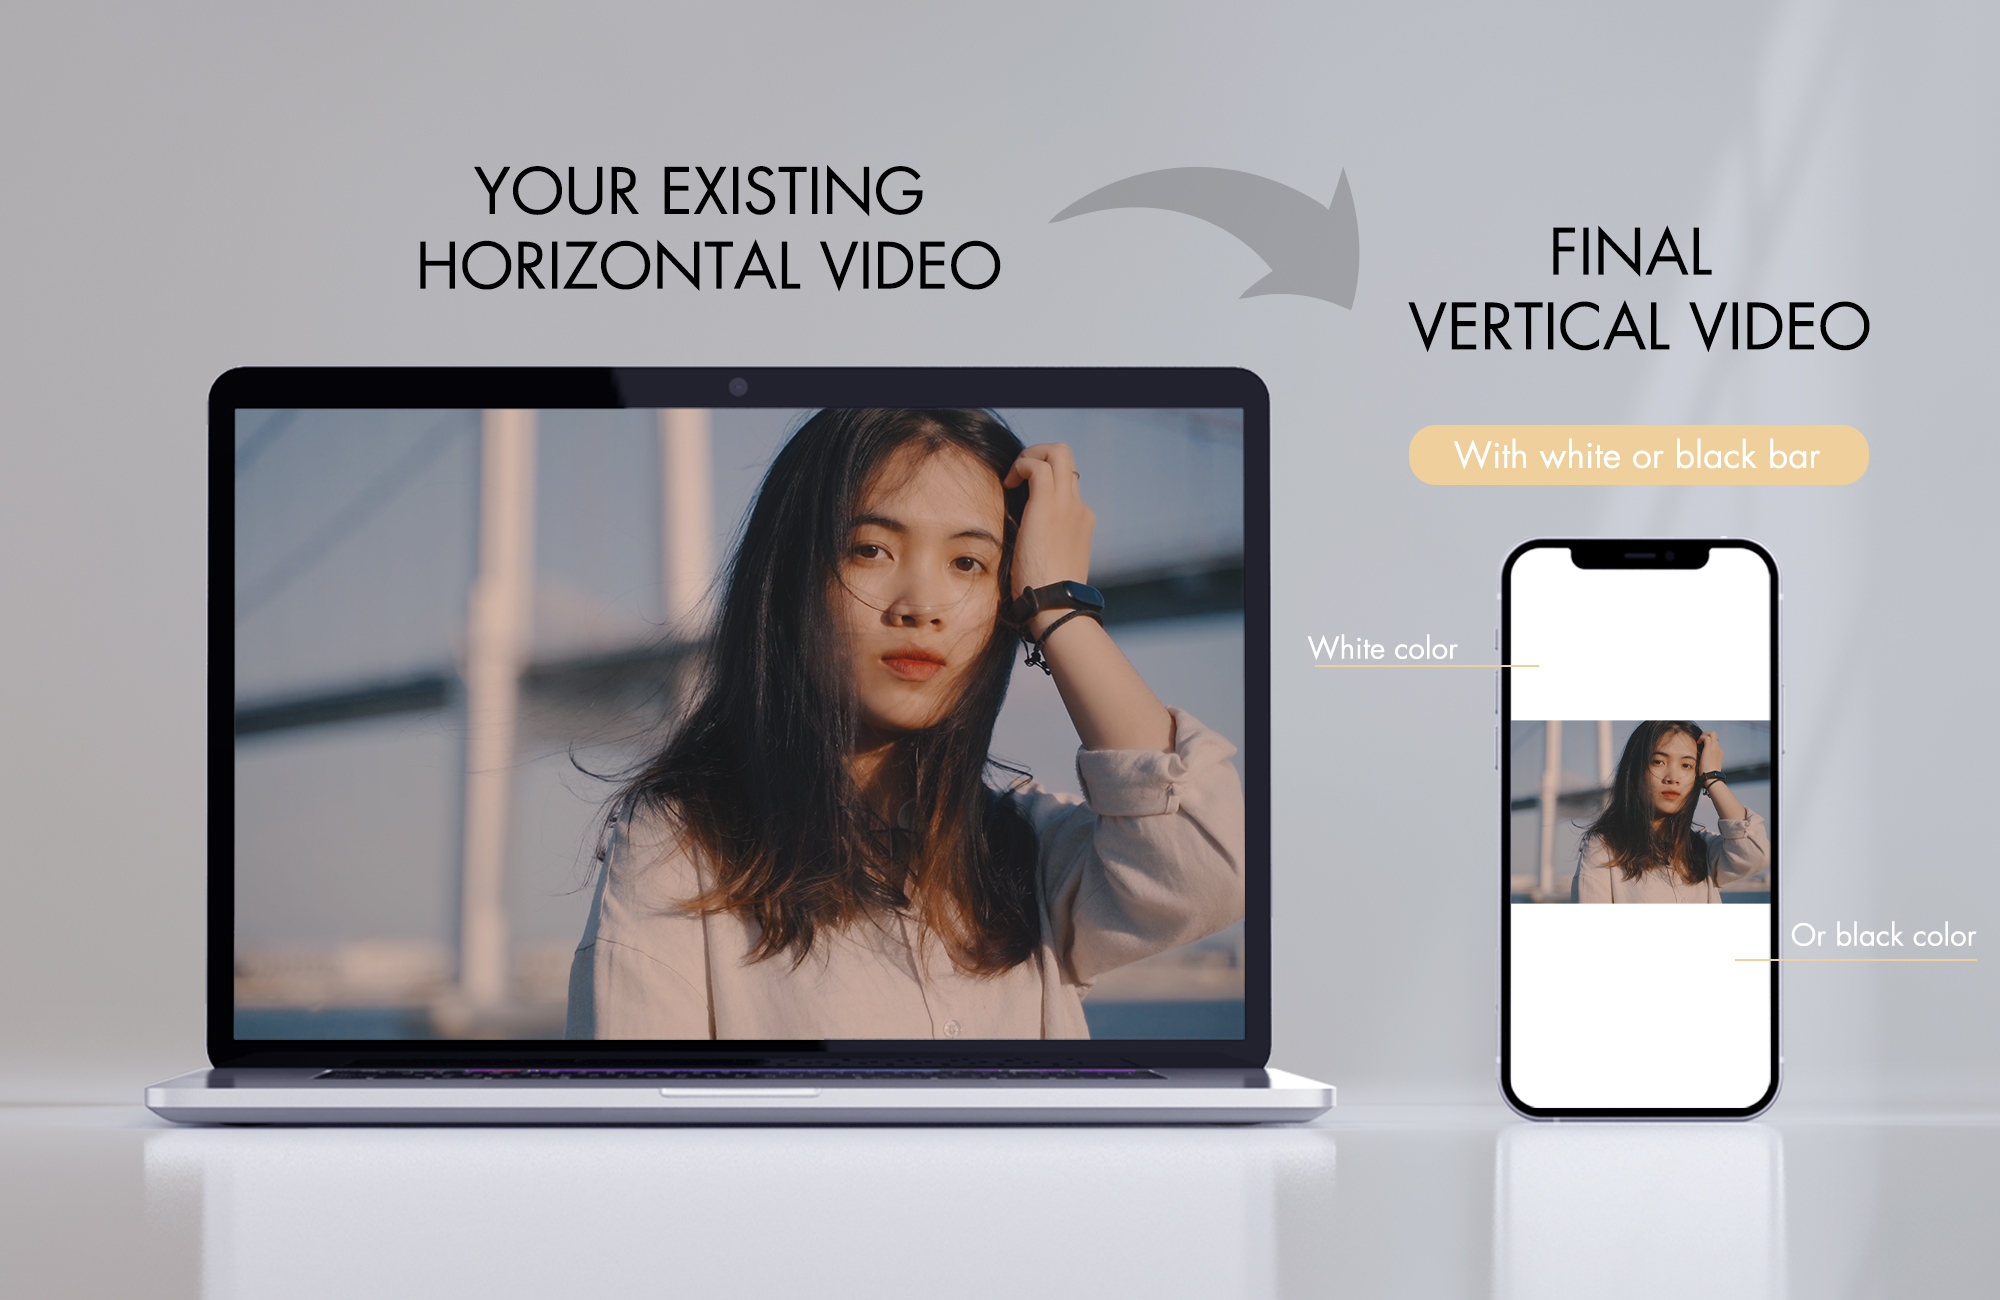 I will convert your landscape video to vertical video